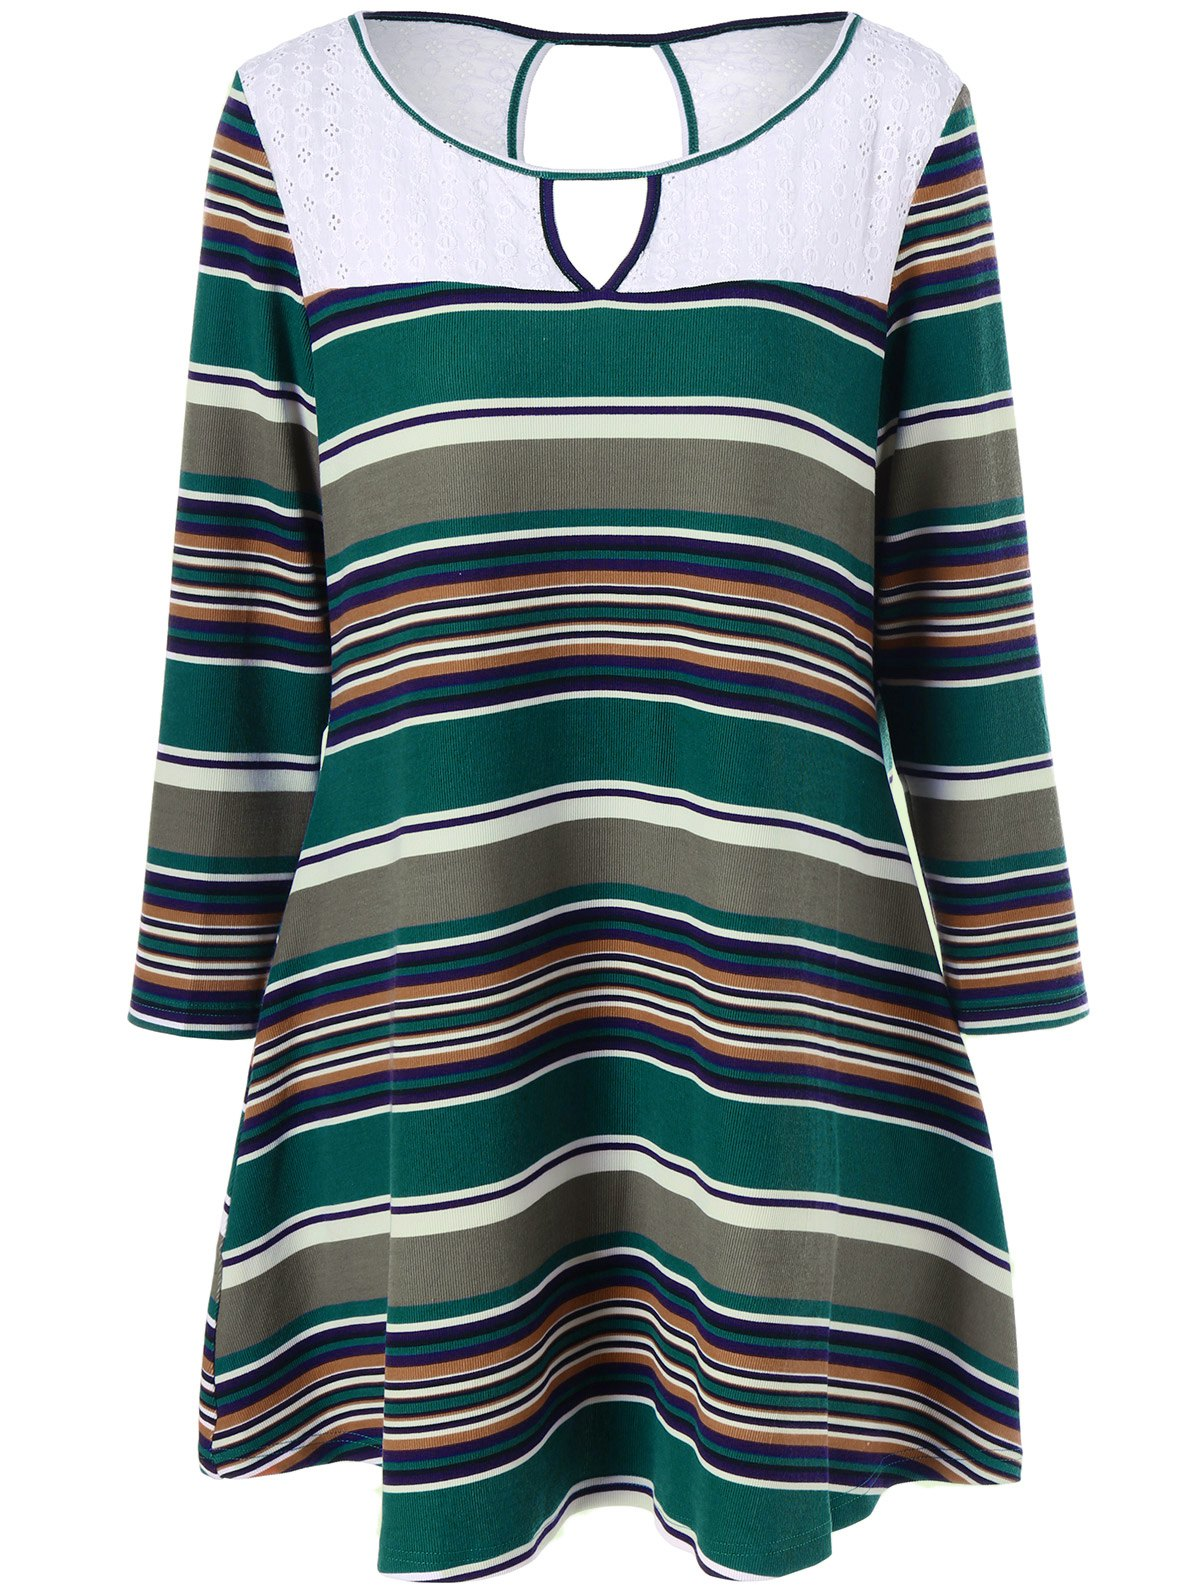 Plus Size Keyhole Striped Longline T-Shirt - COLORMIX 4XL